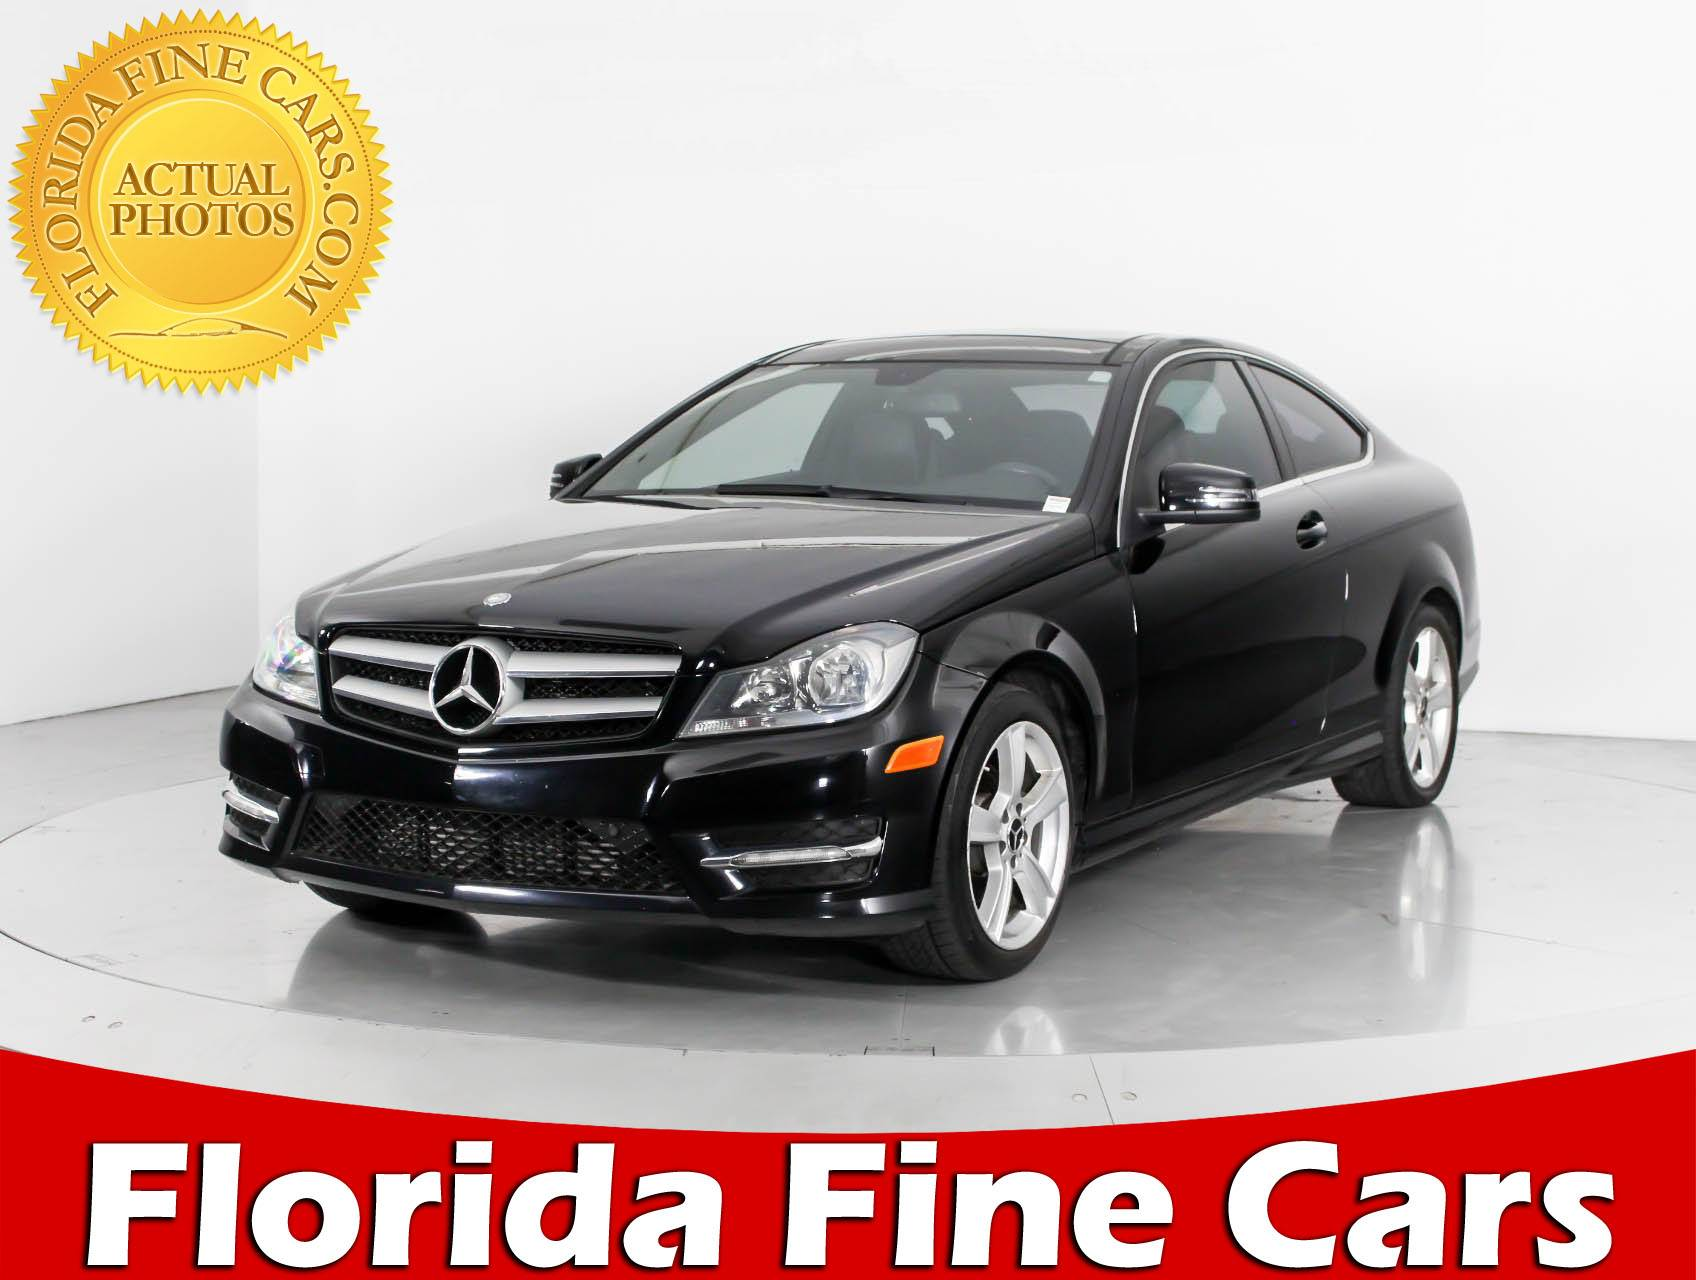 Used 2013 MERCEDES BENZ C CLASS C250 Coupe for sale in MIAMI FL